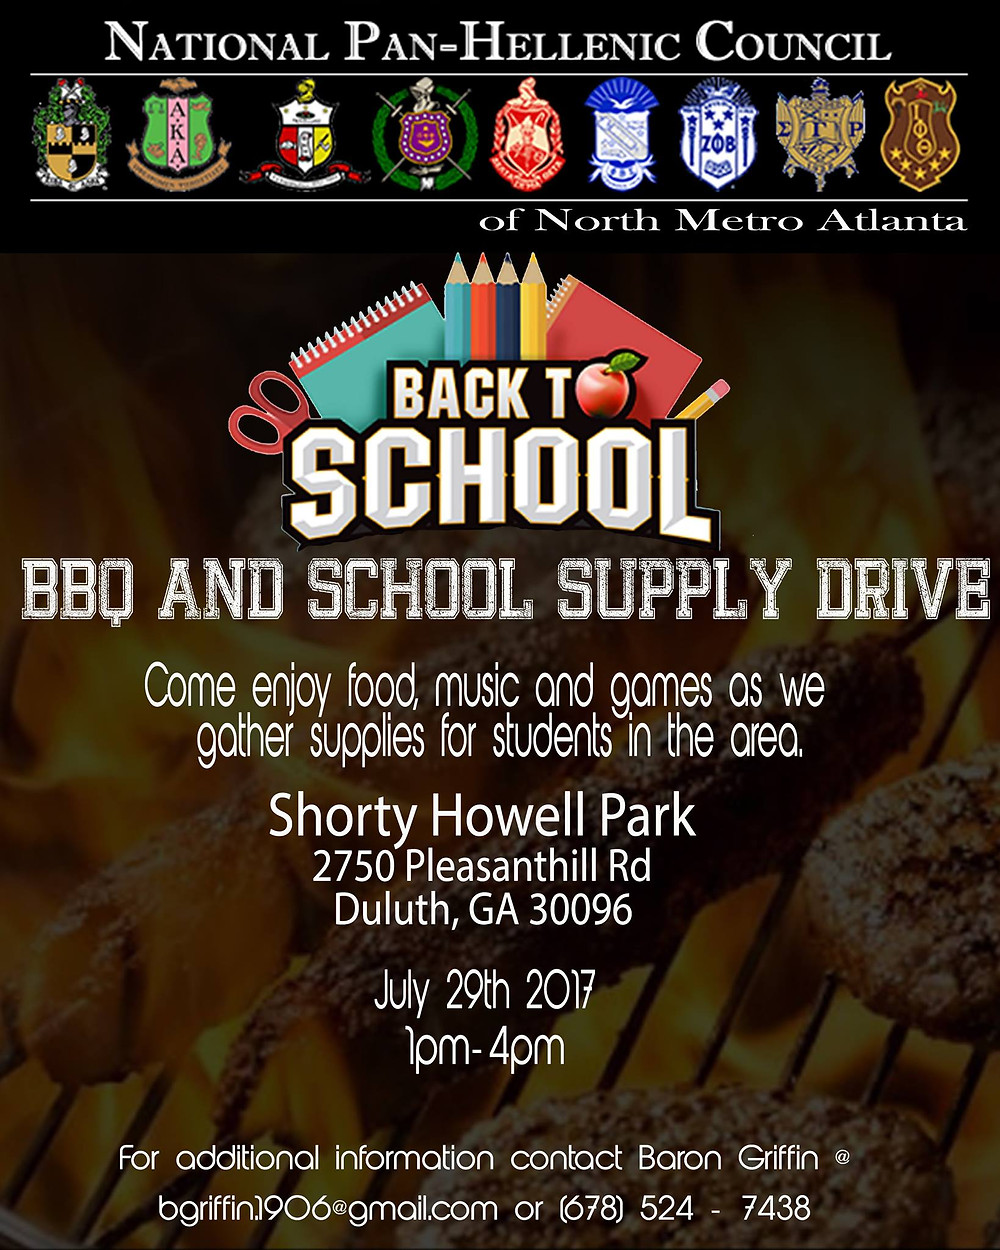 Make plans to donate and attend the school supply drive via the NPHC of North Metro Atlanta!